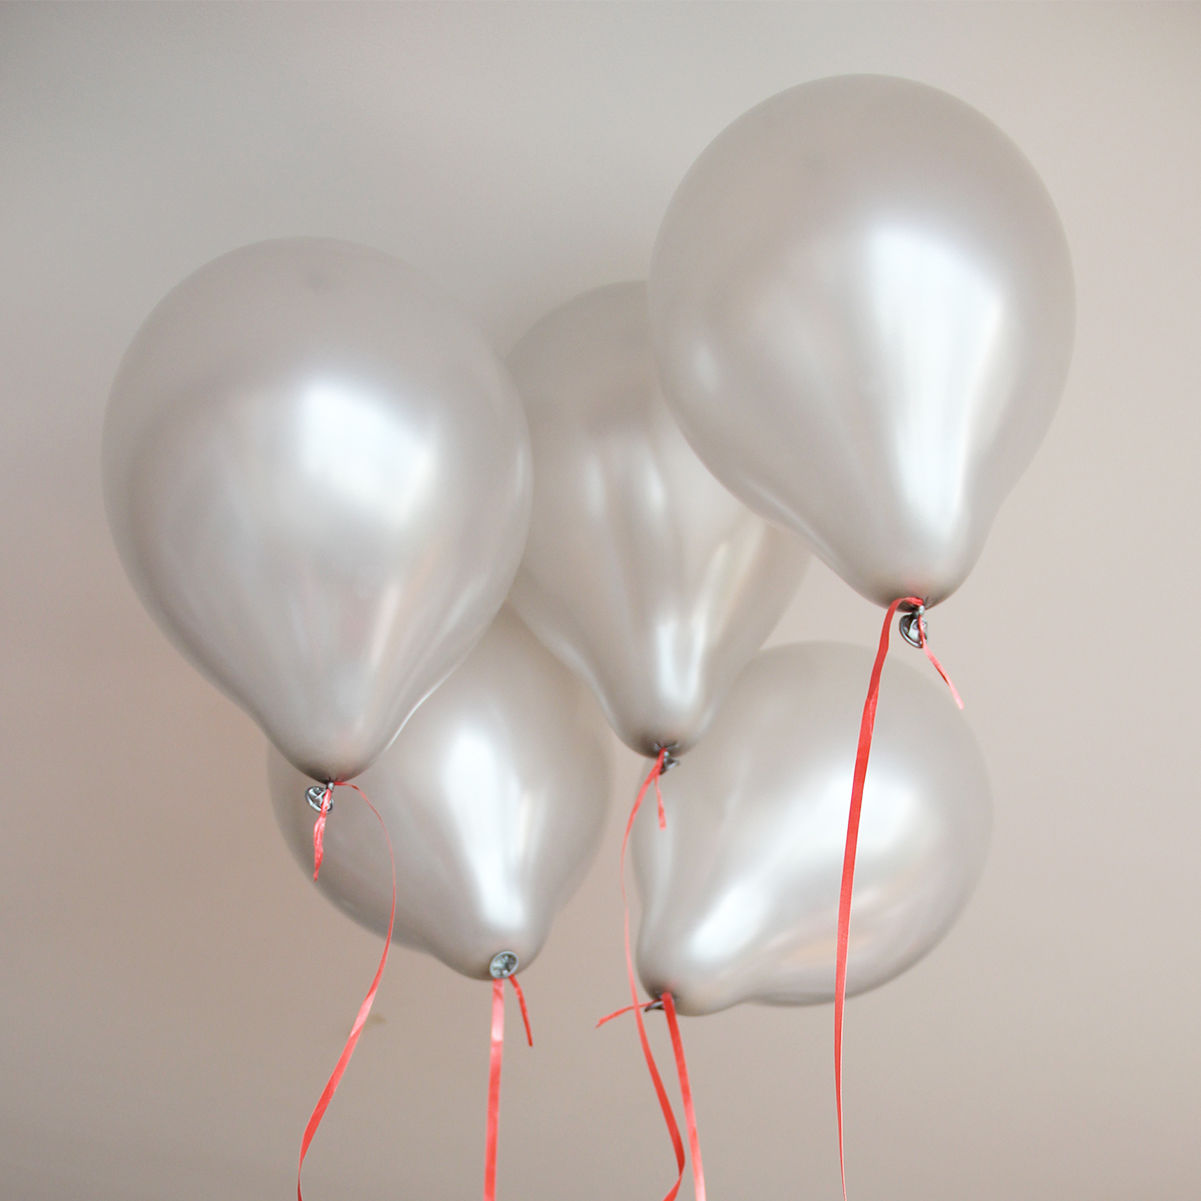 100 pcs 10 inch plain latex balloons party wedding for Silver cloud balloons